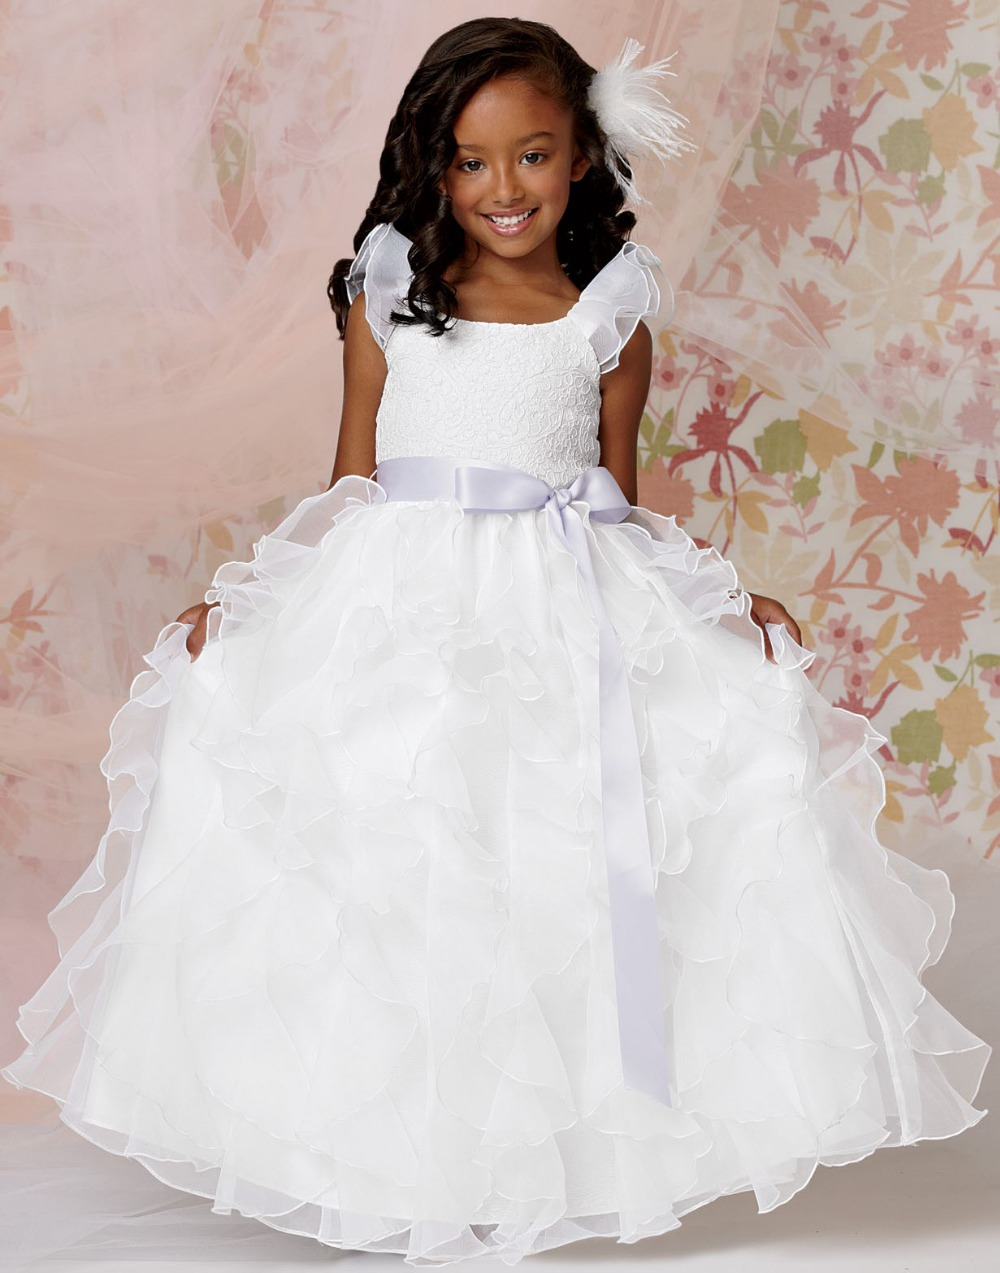 ca90a63ee98 2015 New Little Flower Girl Organza Belted White Ball Gown Prom Dress  Children Pageant Dresses For Wedding China FG053